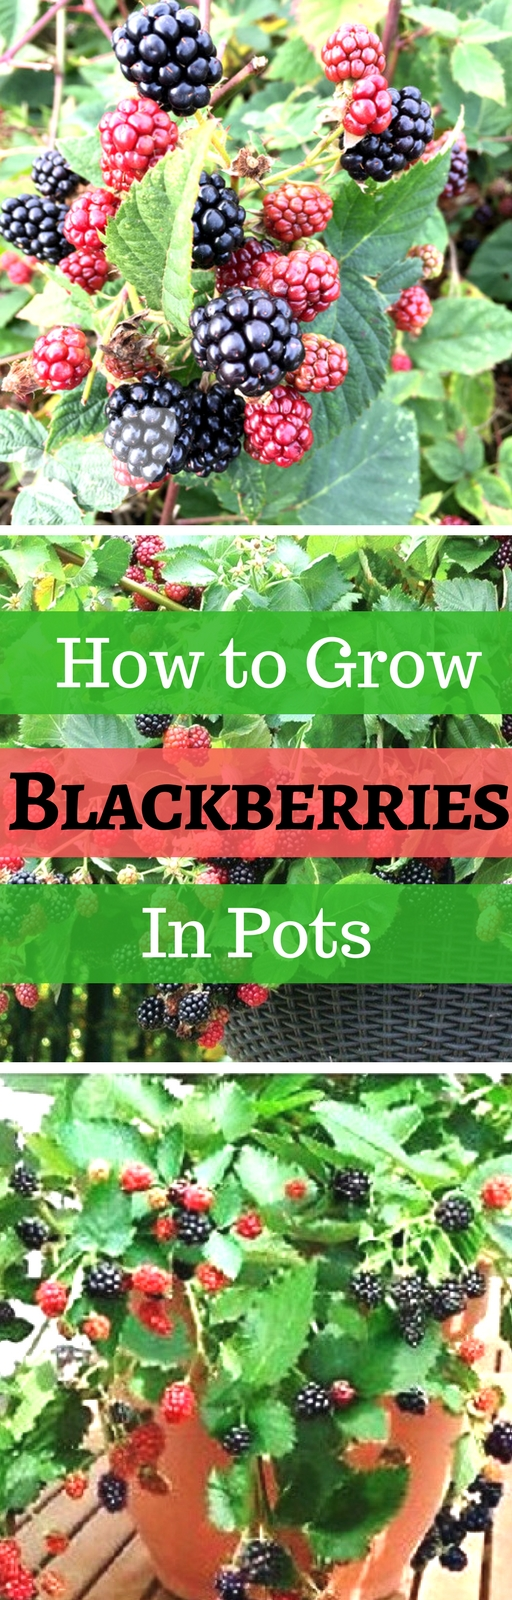 Best Ways to Increase the Productivity of Your Blackberry Plants